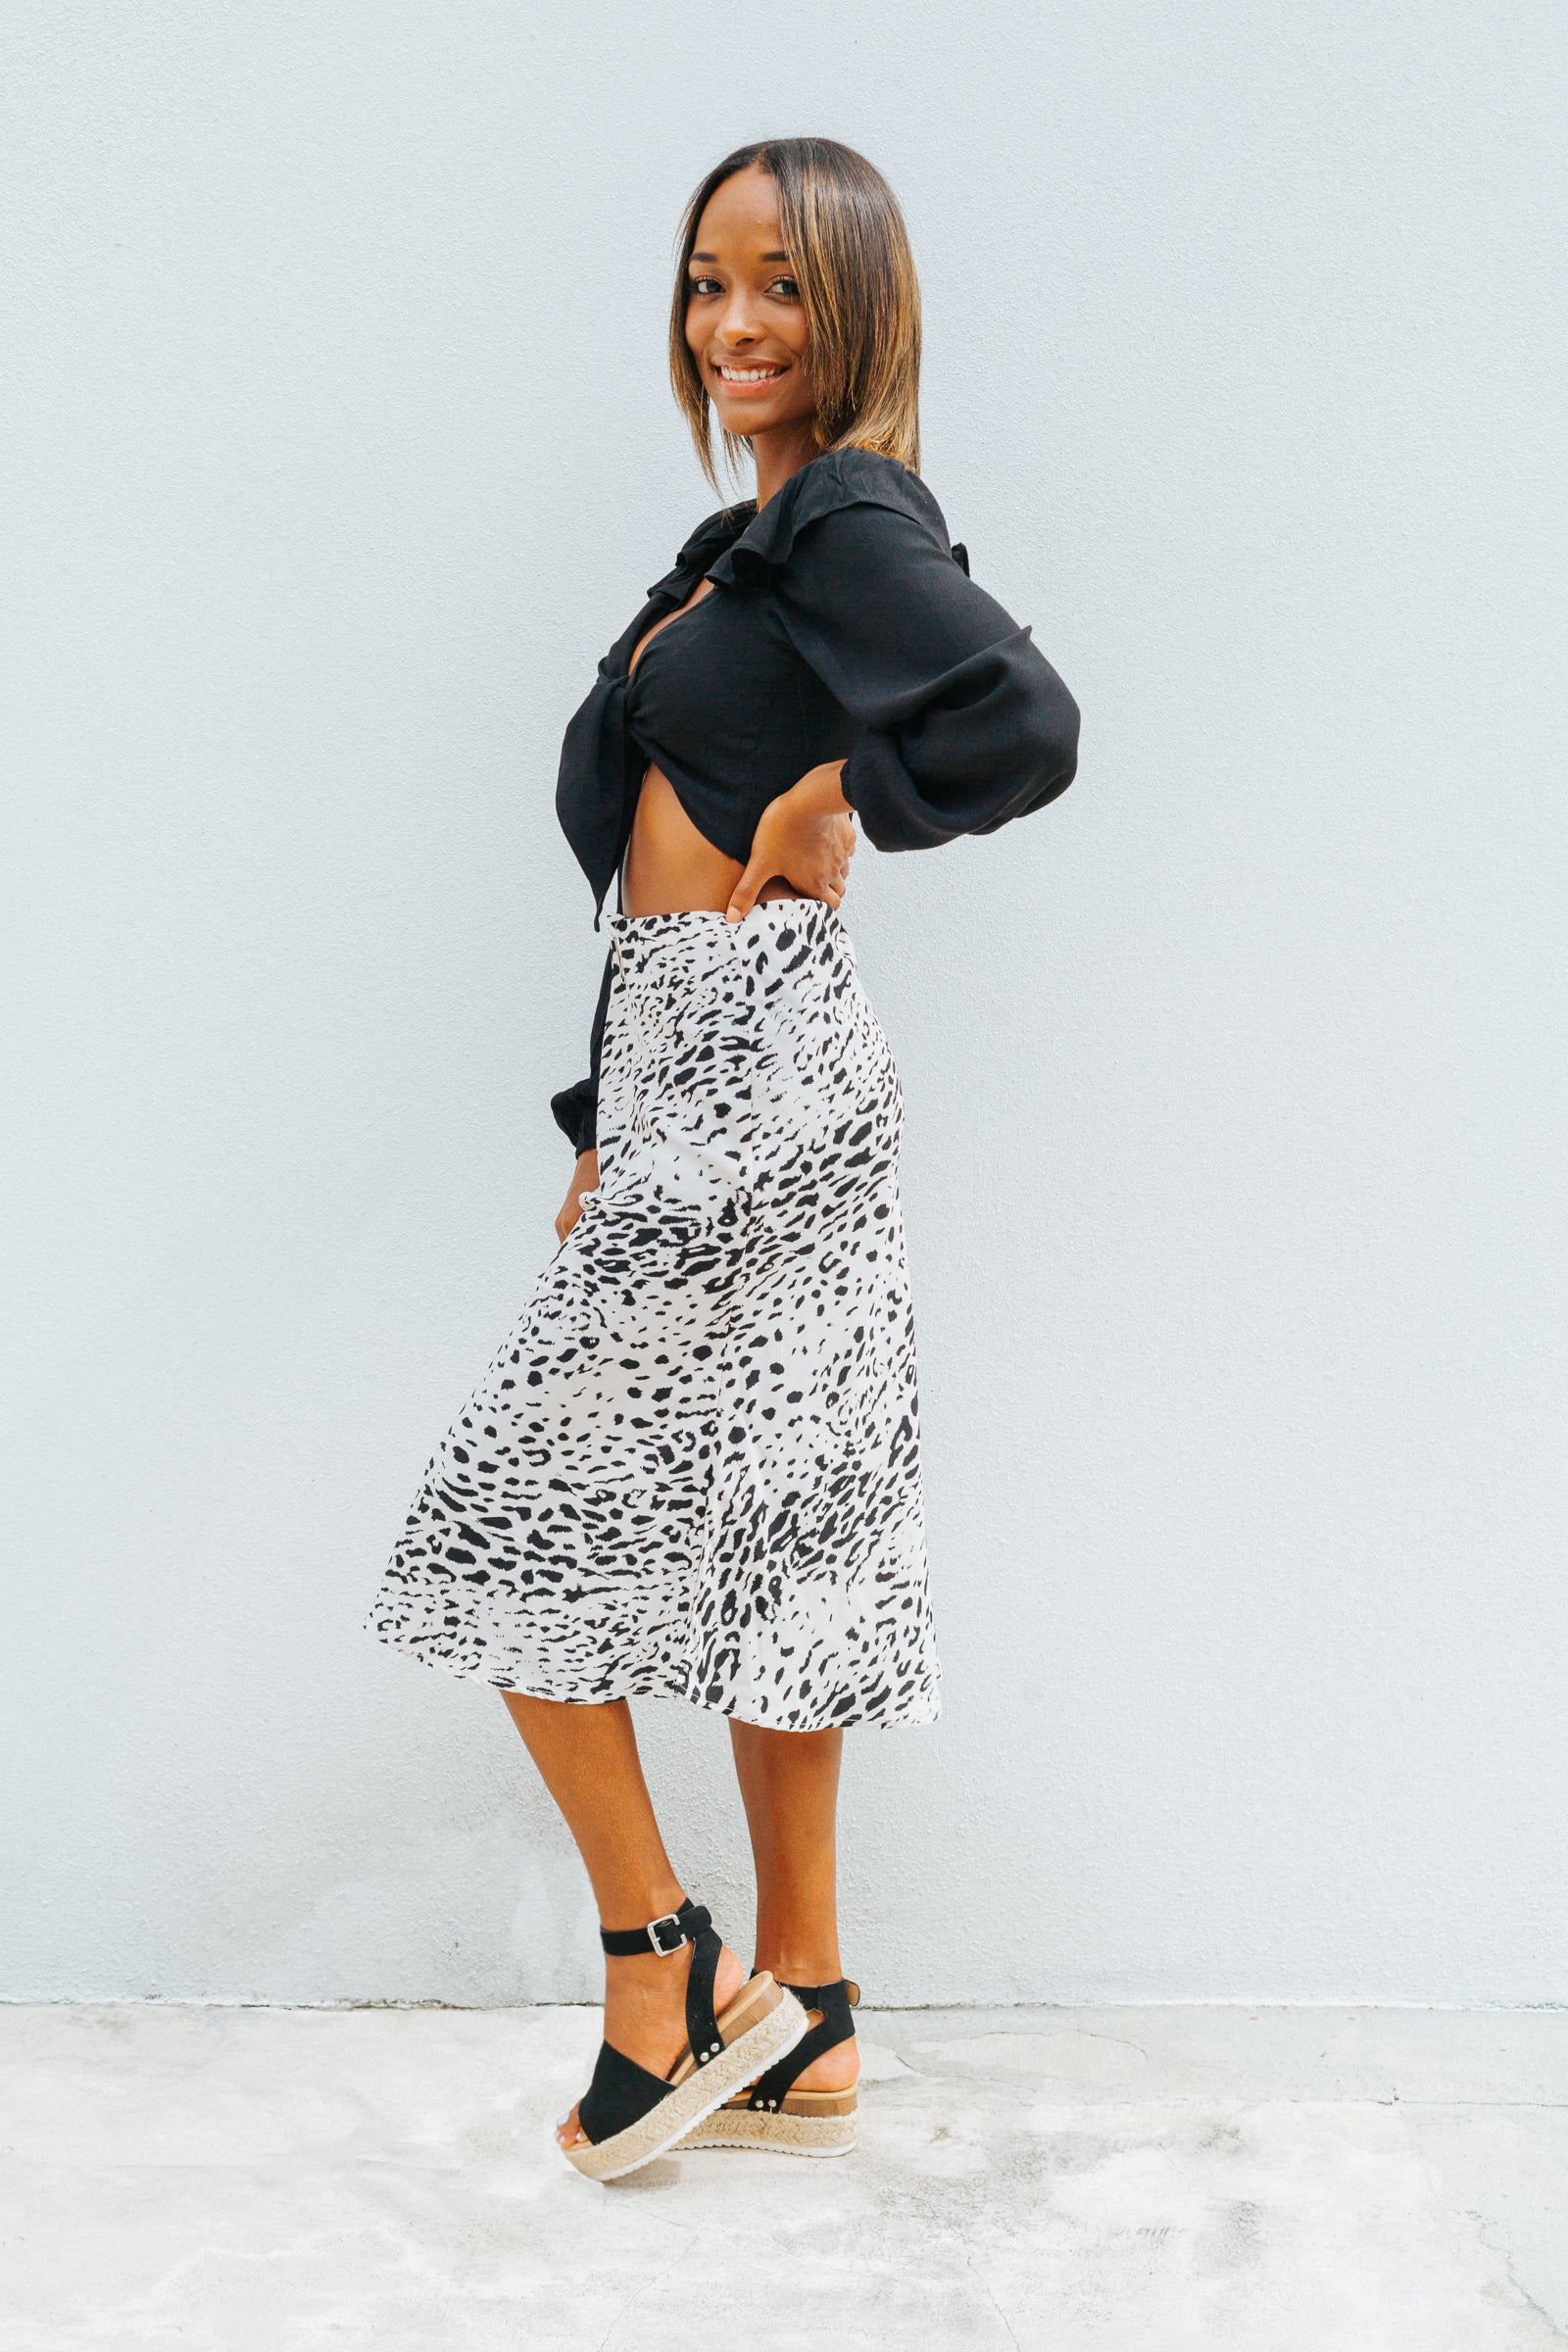 Leopard prints cover the fabric of this stunning midi skirt. It has an elastic waistband that hits at the small of the waist and flows down into a bias cut and flirty midi skirt.